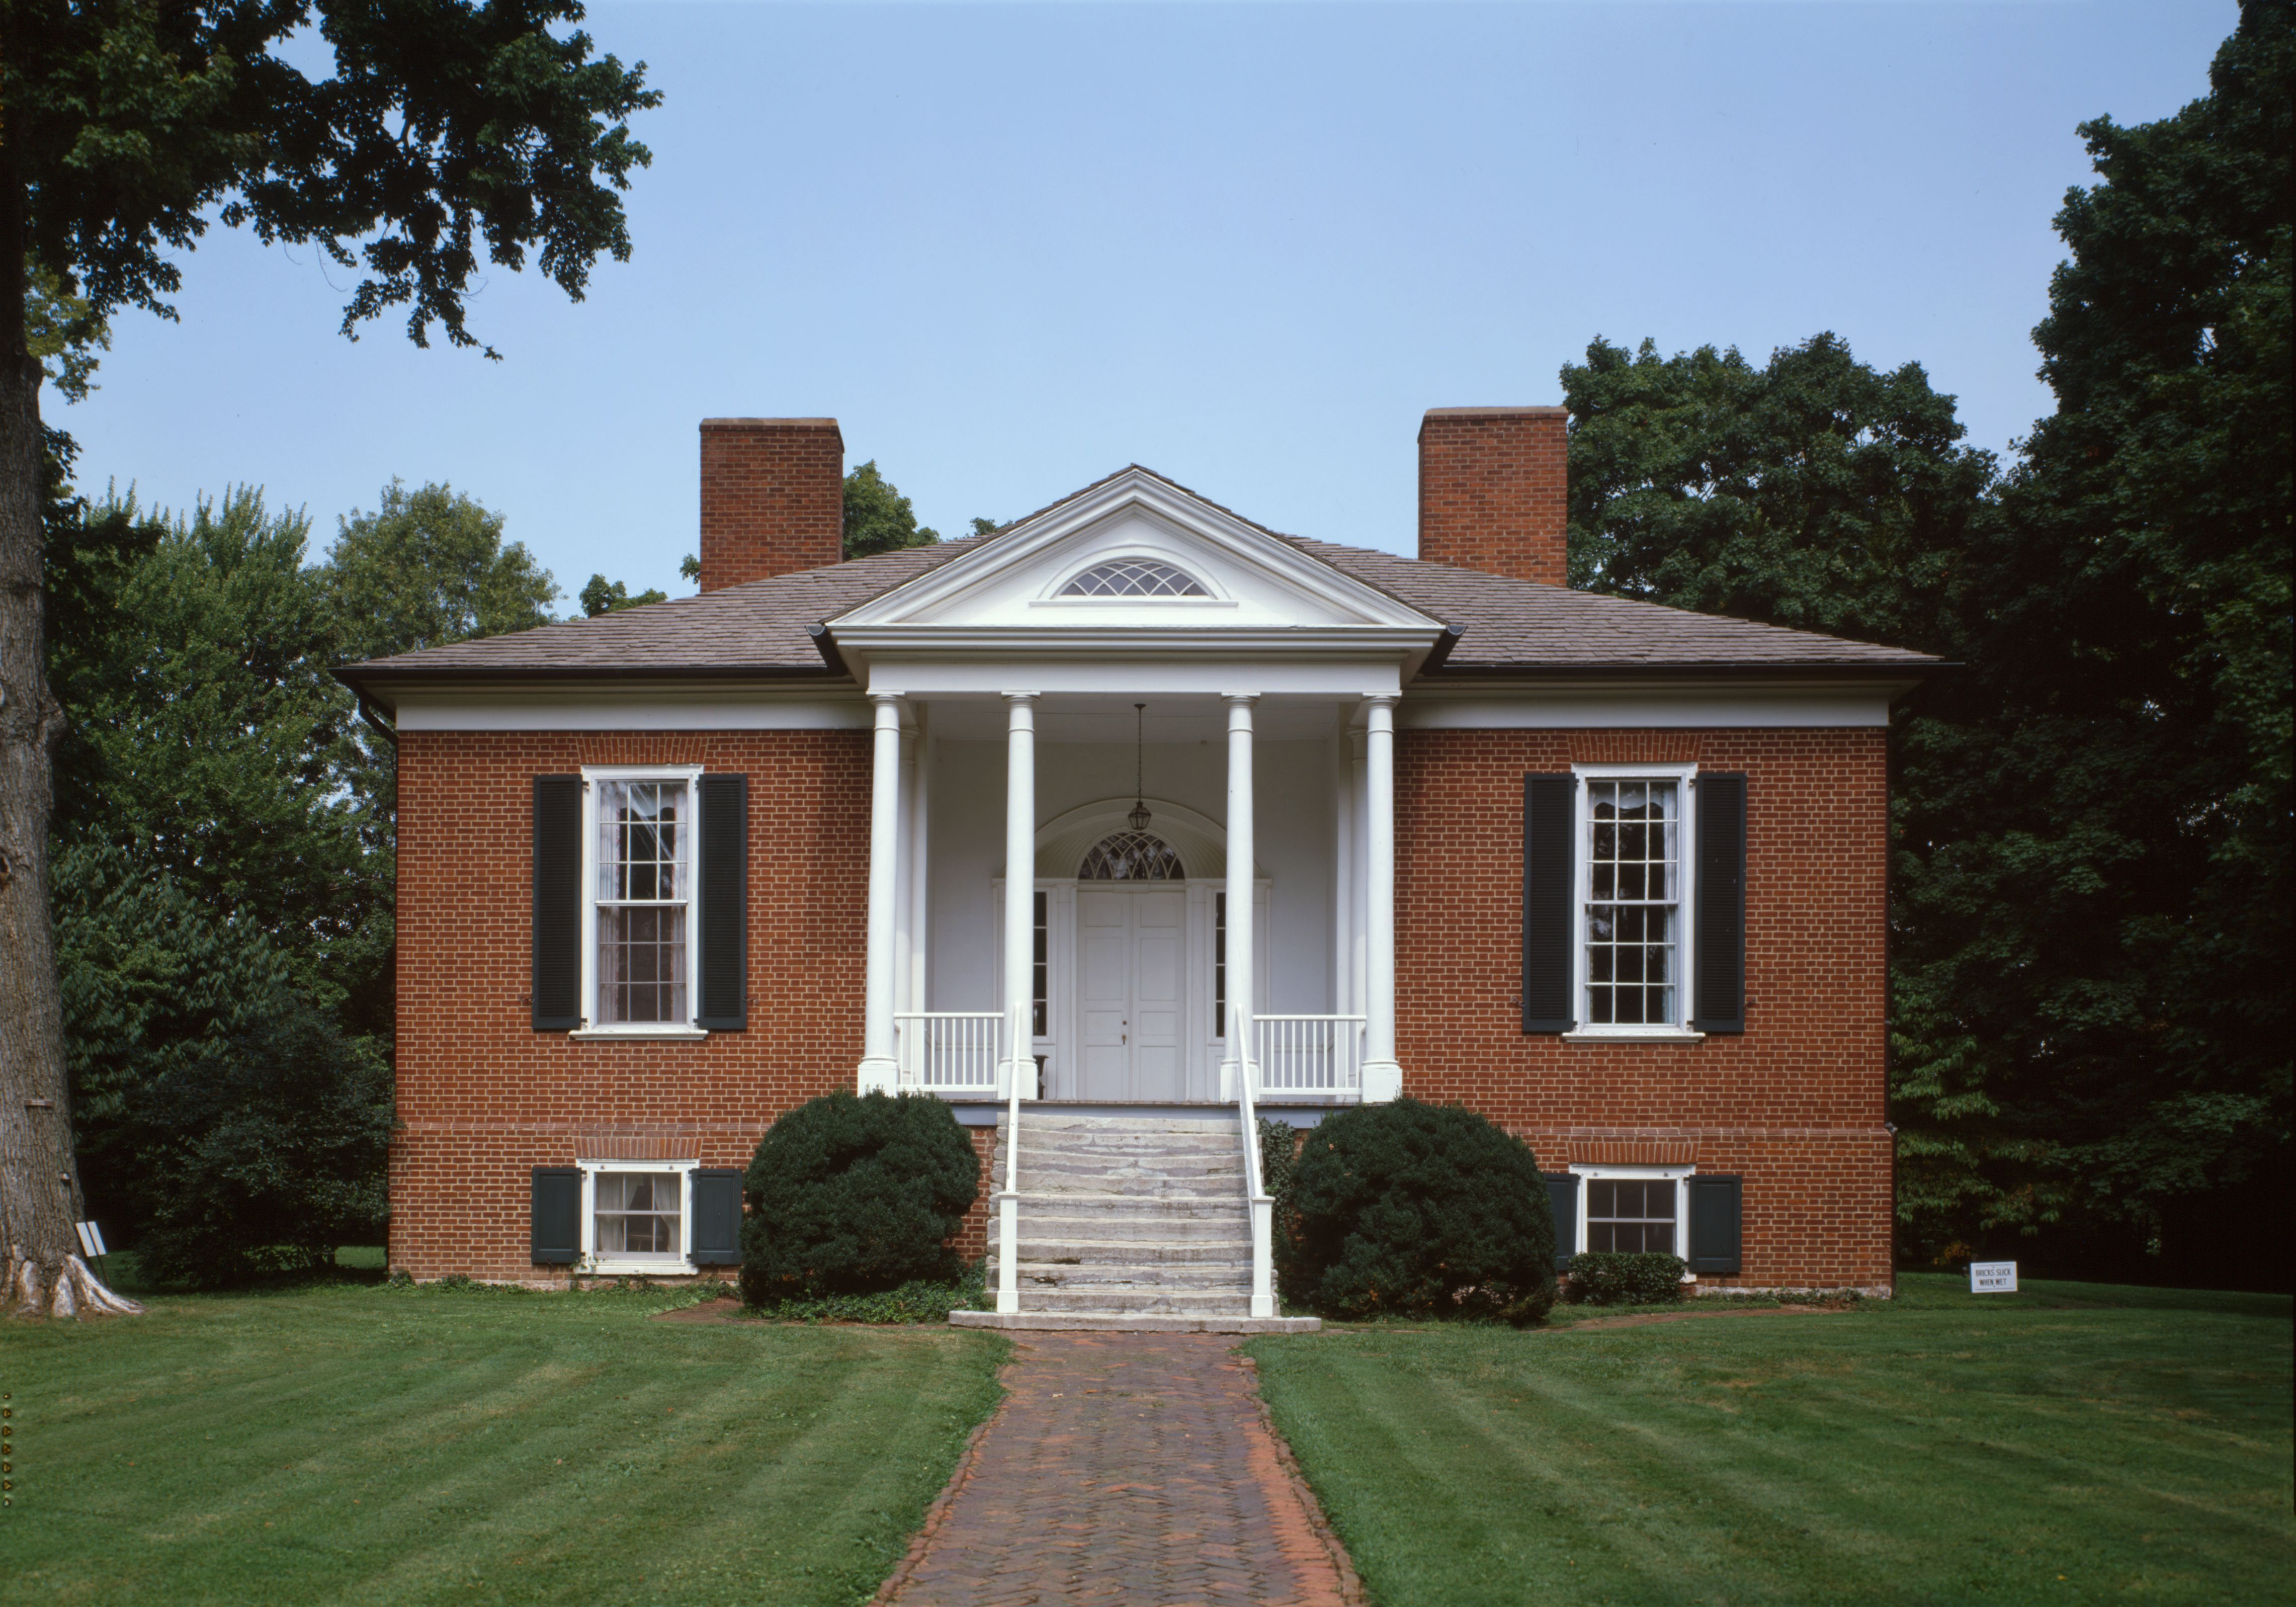 My Perfect Wedding Venue Farmington, Antebellum homes